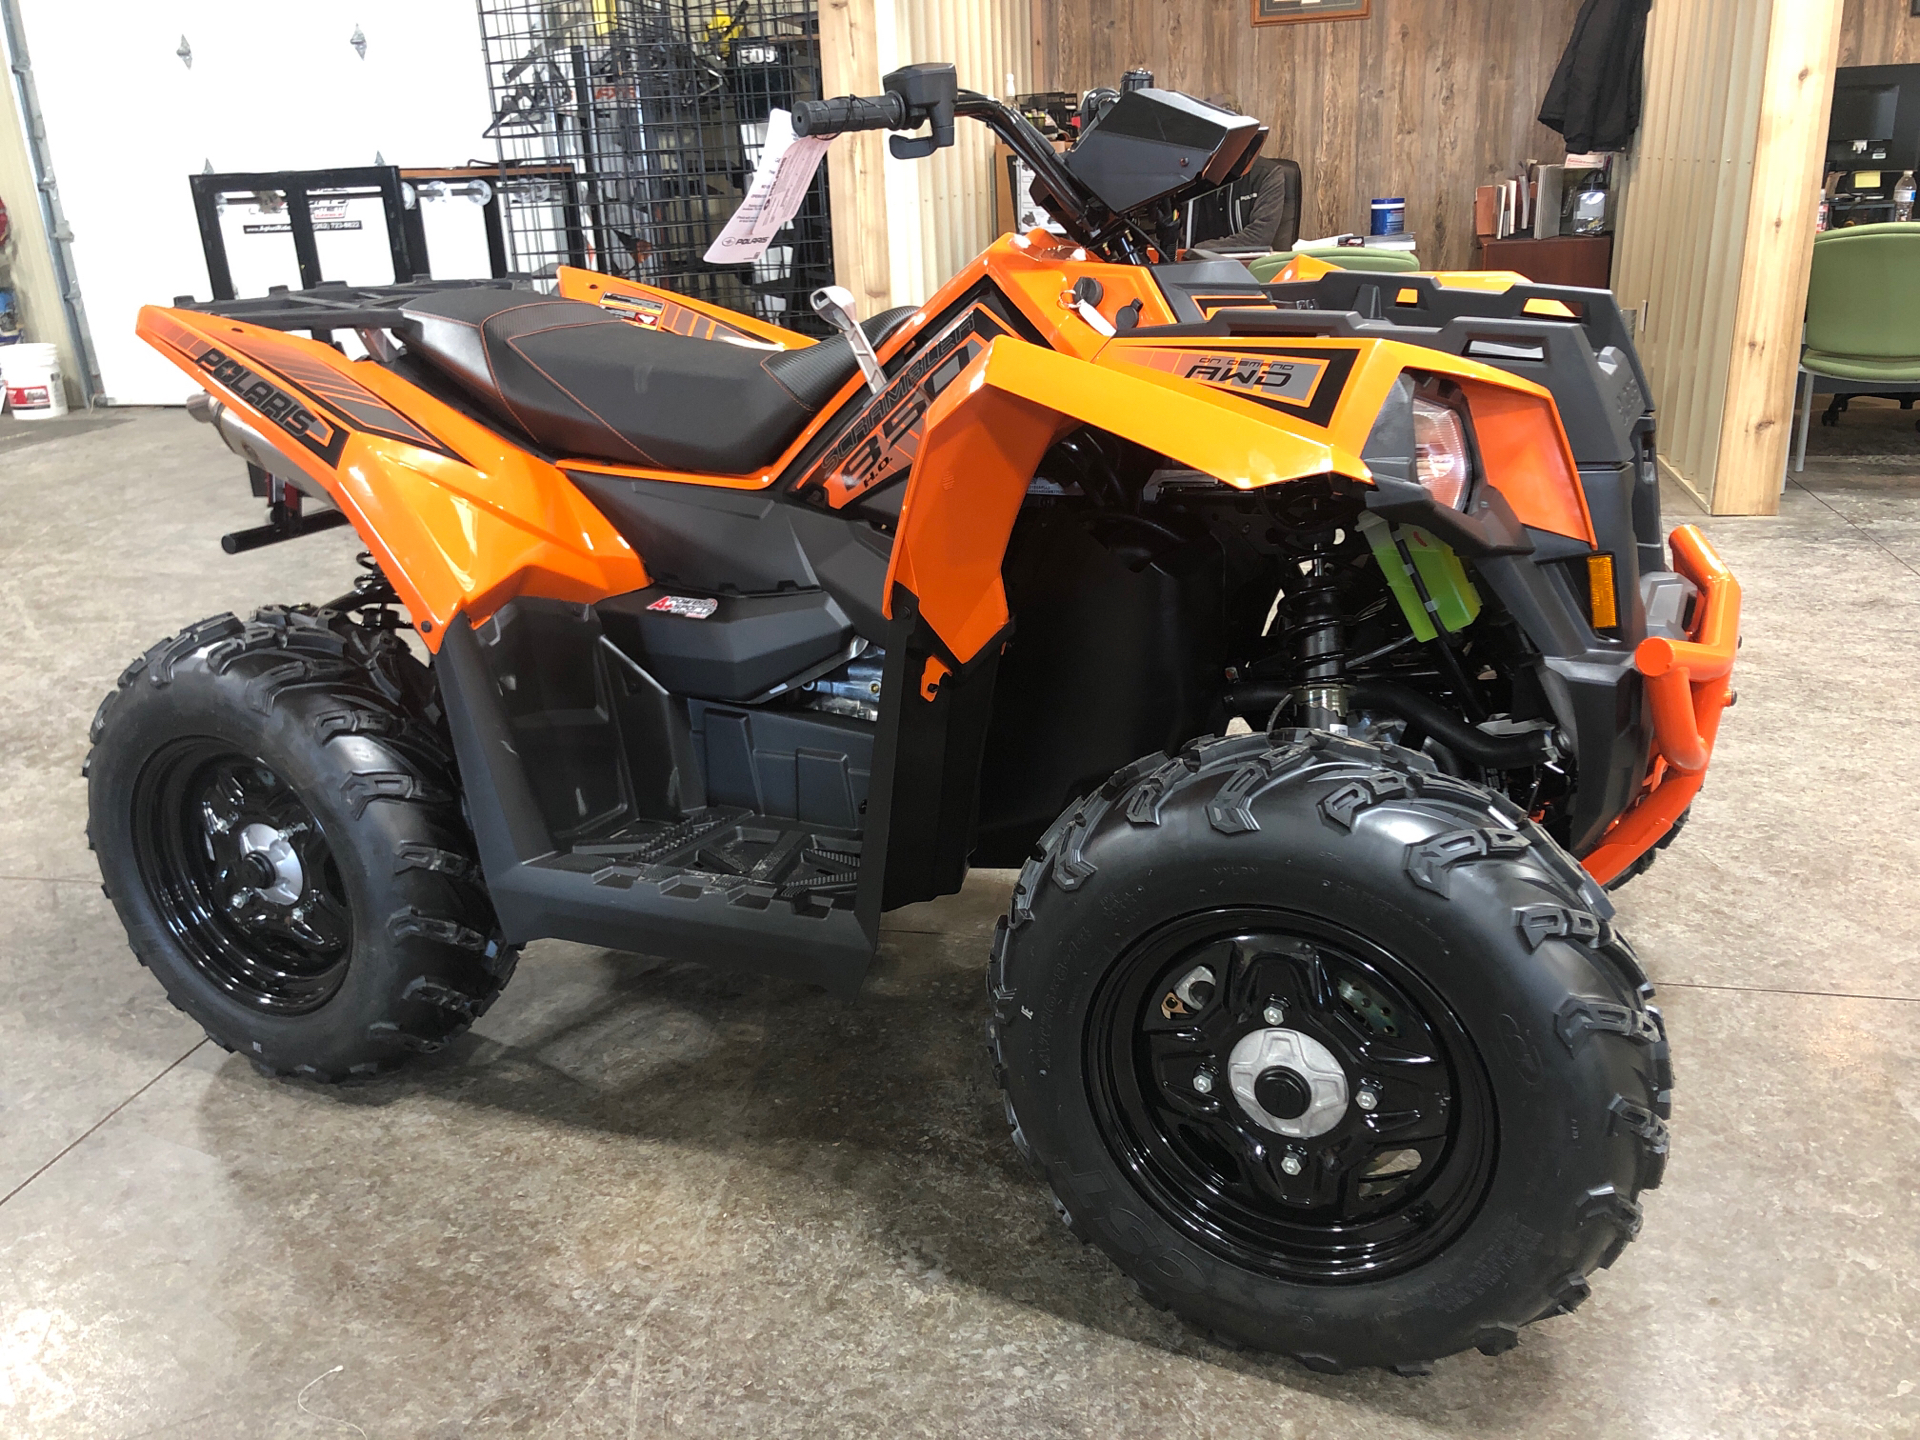 2021 Polaris Scrambler 850 in Elkhorn, Wisconsin - Photo 1